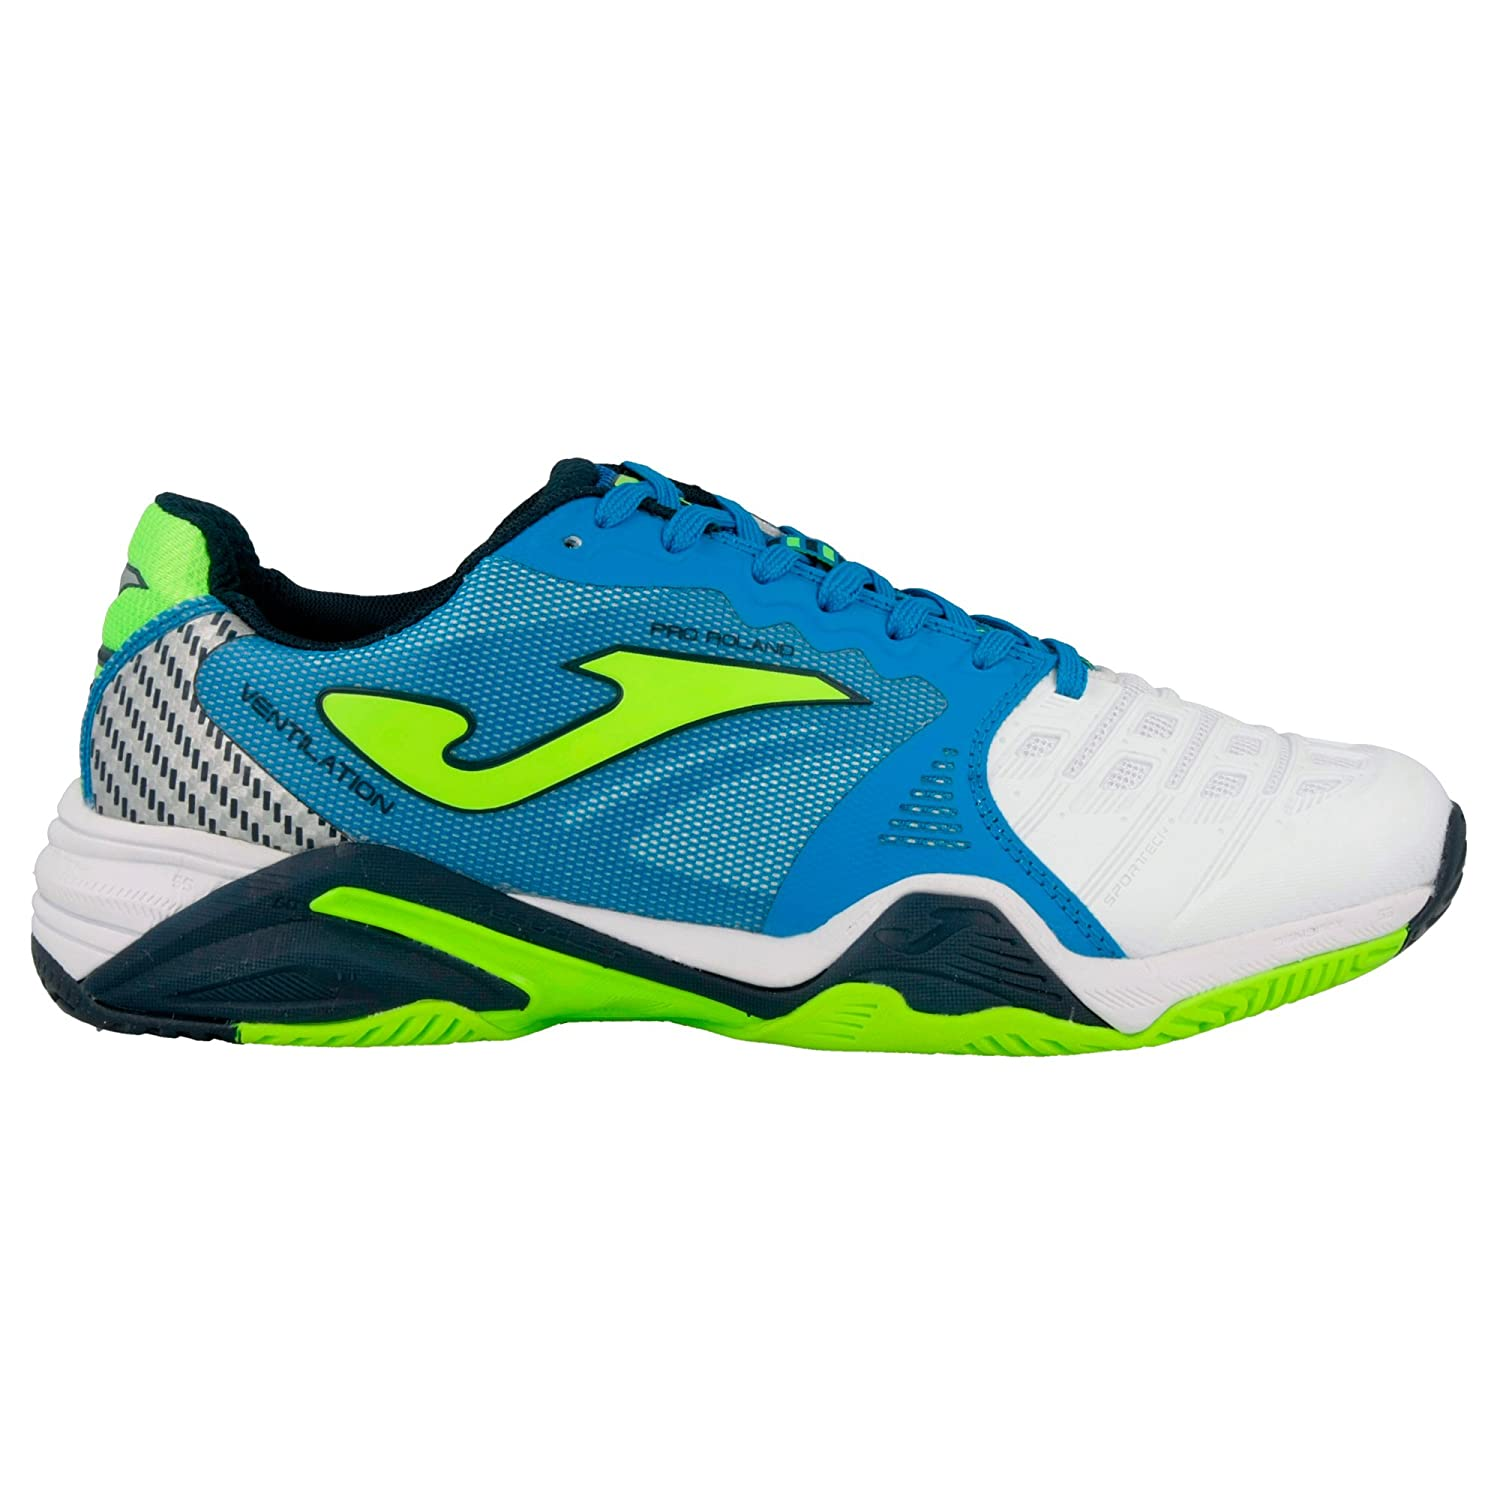 Joma T _ prolas _ 702 Zapatos Running T. Pro Roland All Court 702 BIANCO-ROYAL Shoes: Amazon.es: Deportes y aire libre